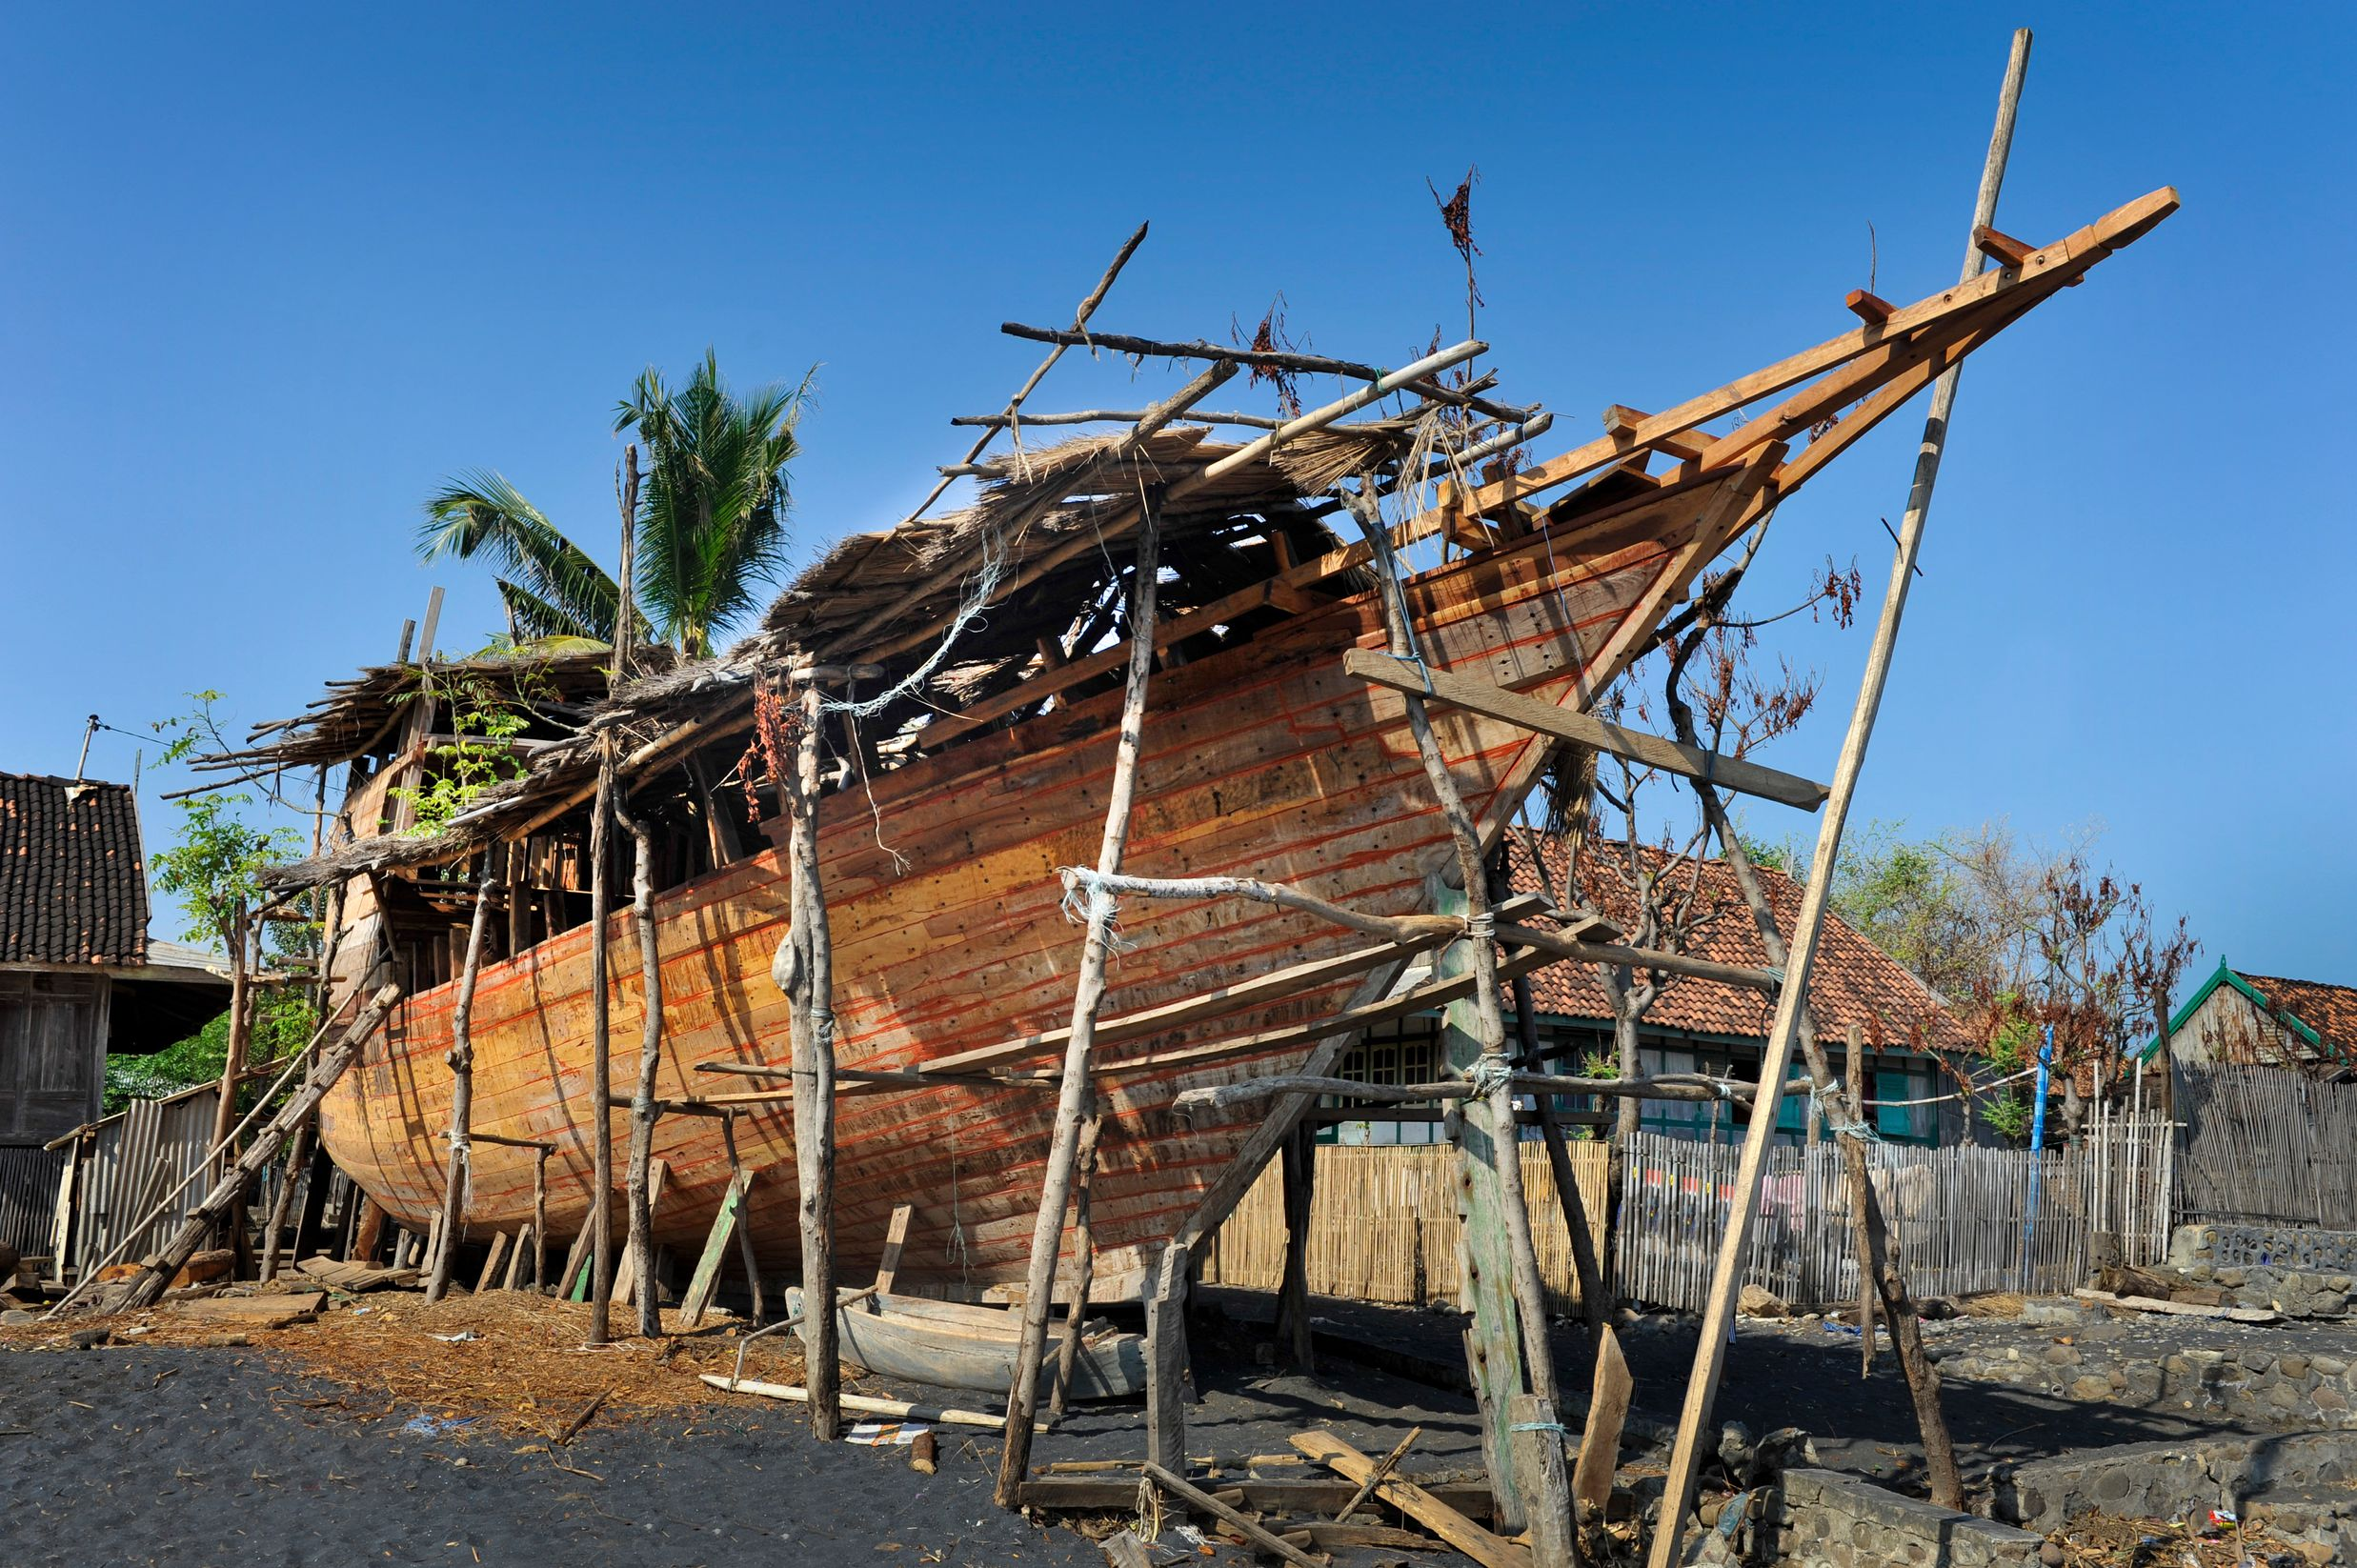 Traditional Indonesian sailing phinisi under construction on beach